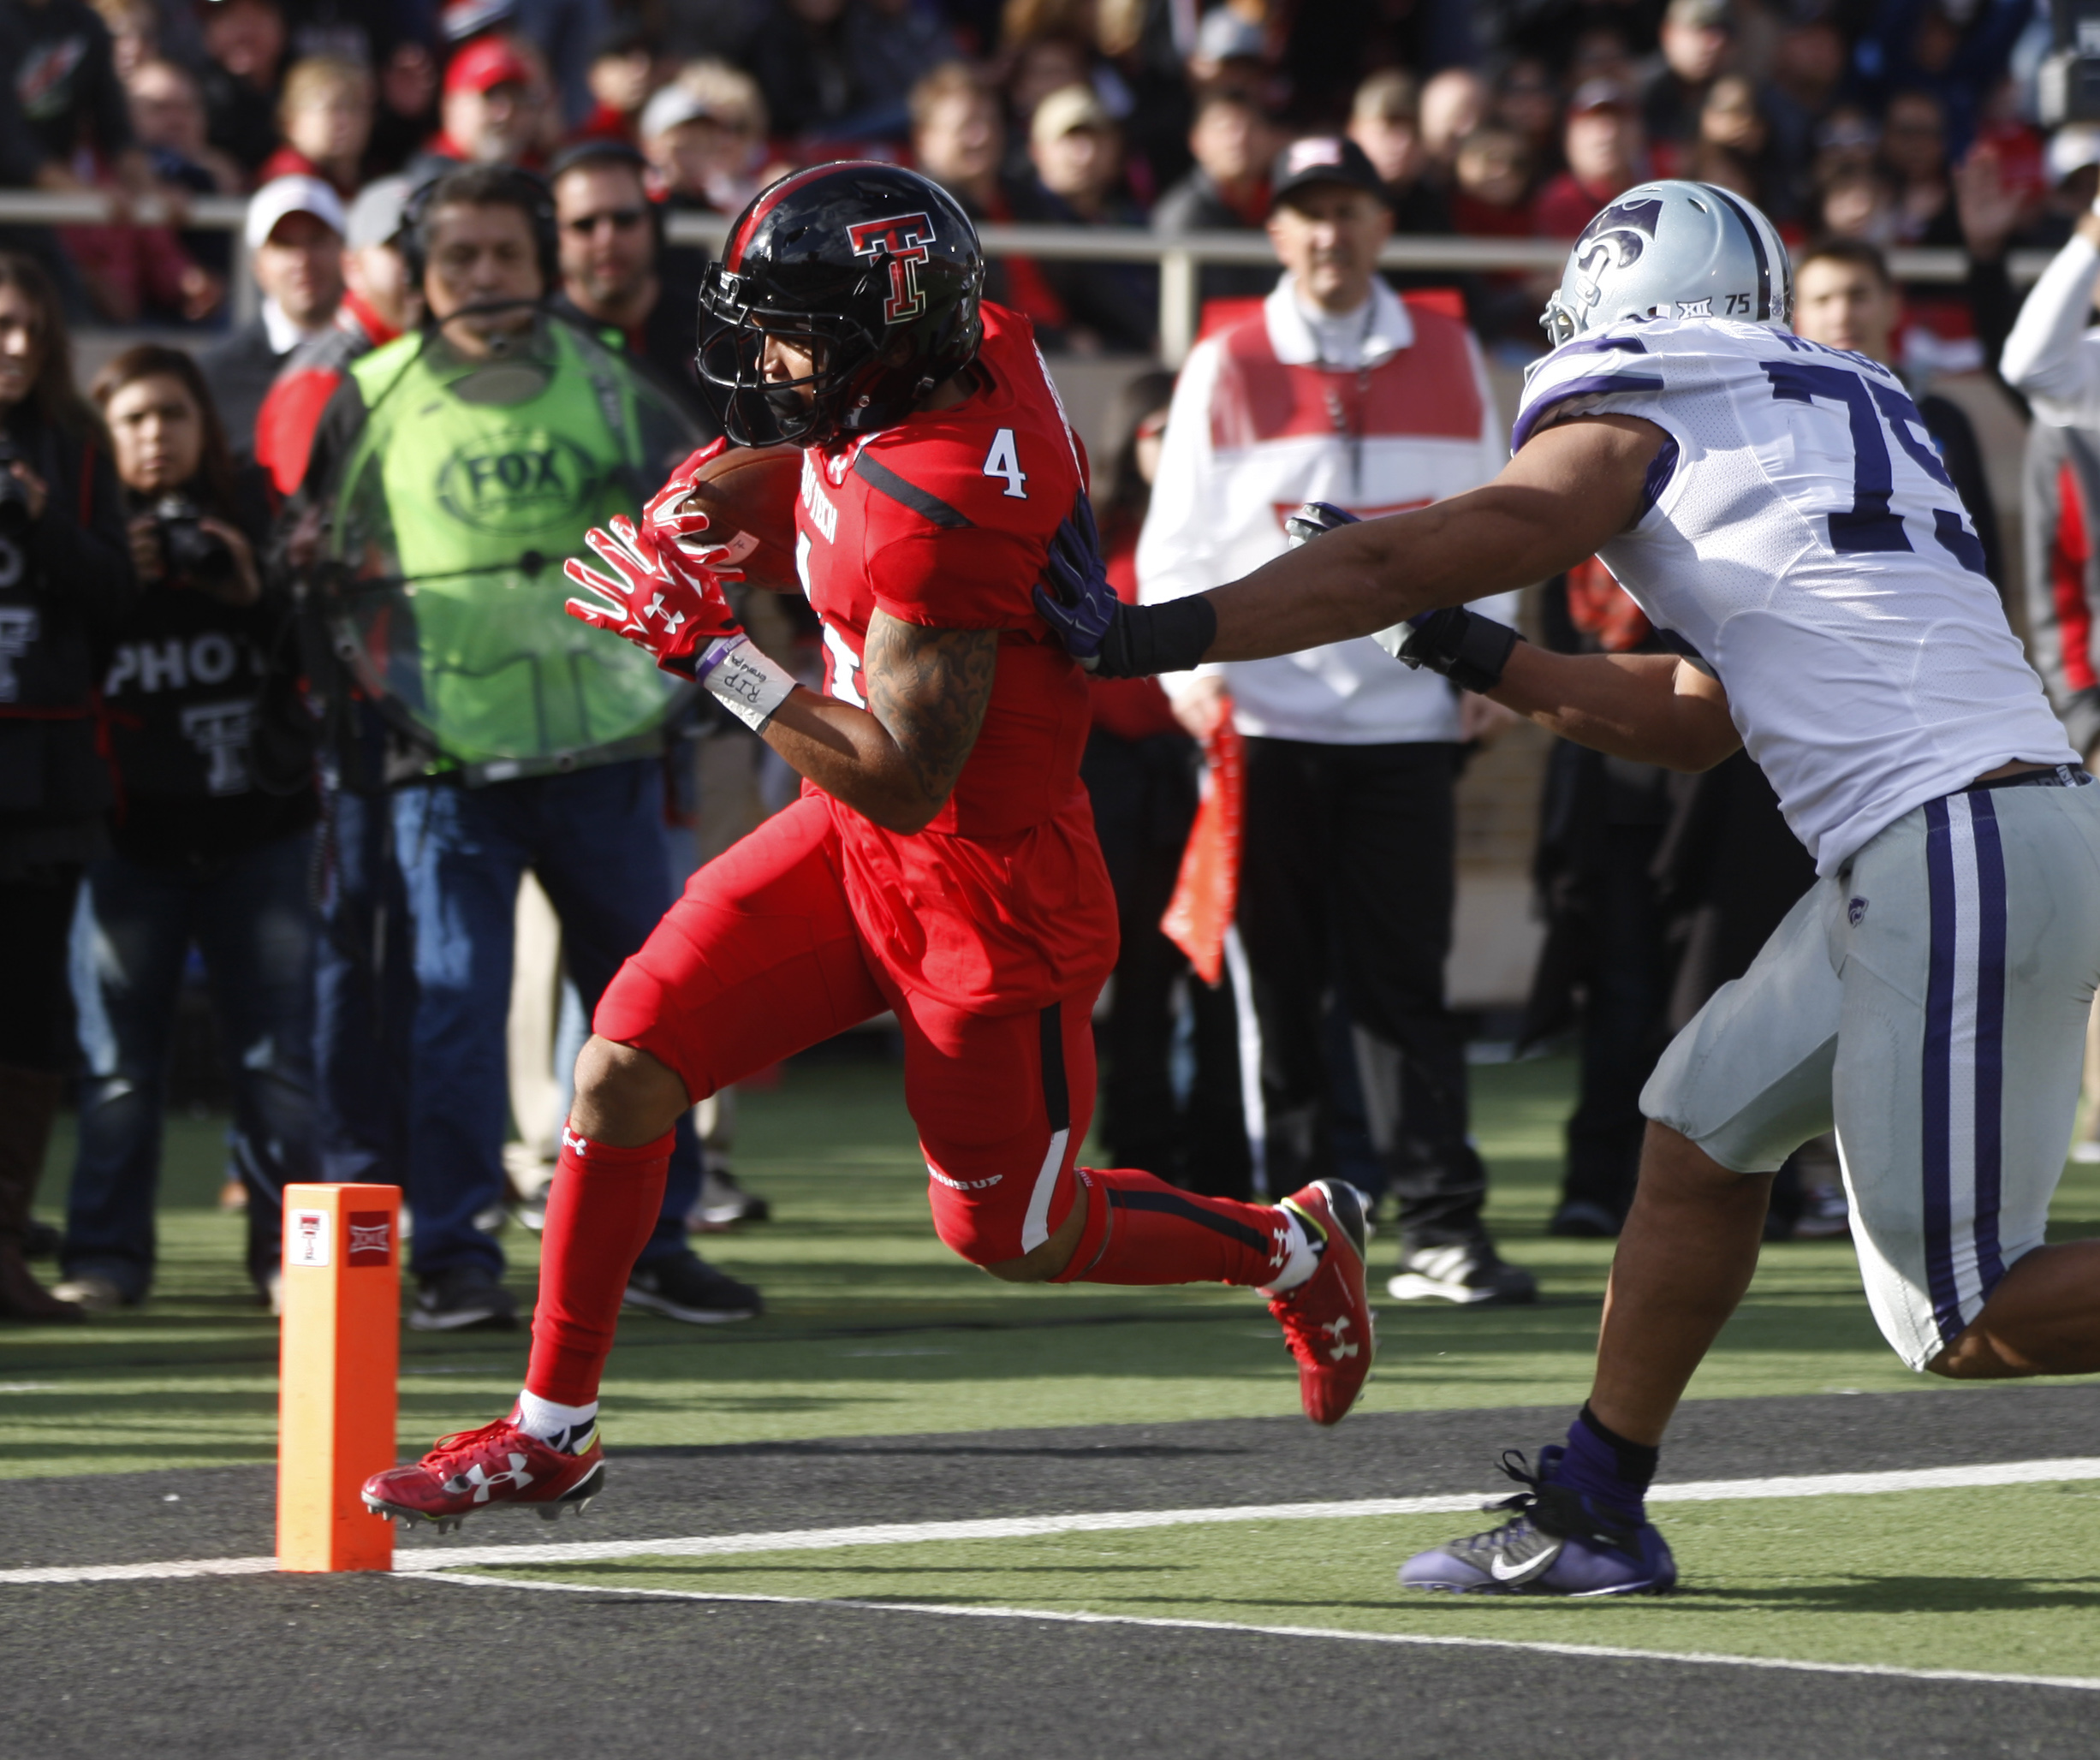 Texas Tech running back Justin Stockton makes a touchdown run during an NCAA college football game against Kansas State, Saturday, Nov. 14, 2015, in Lubbock, Texas. (Mark Rogers/Lubbock Avalanche-Journal via AP) ALL LOCAL TELEVISION OUT; MANDATORY CREDIT